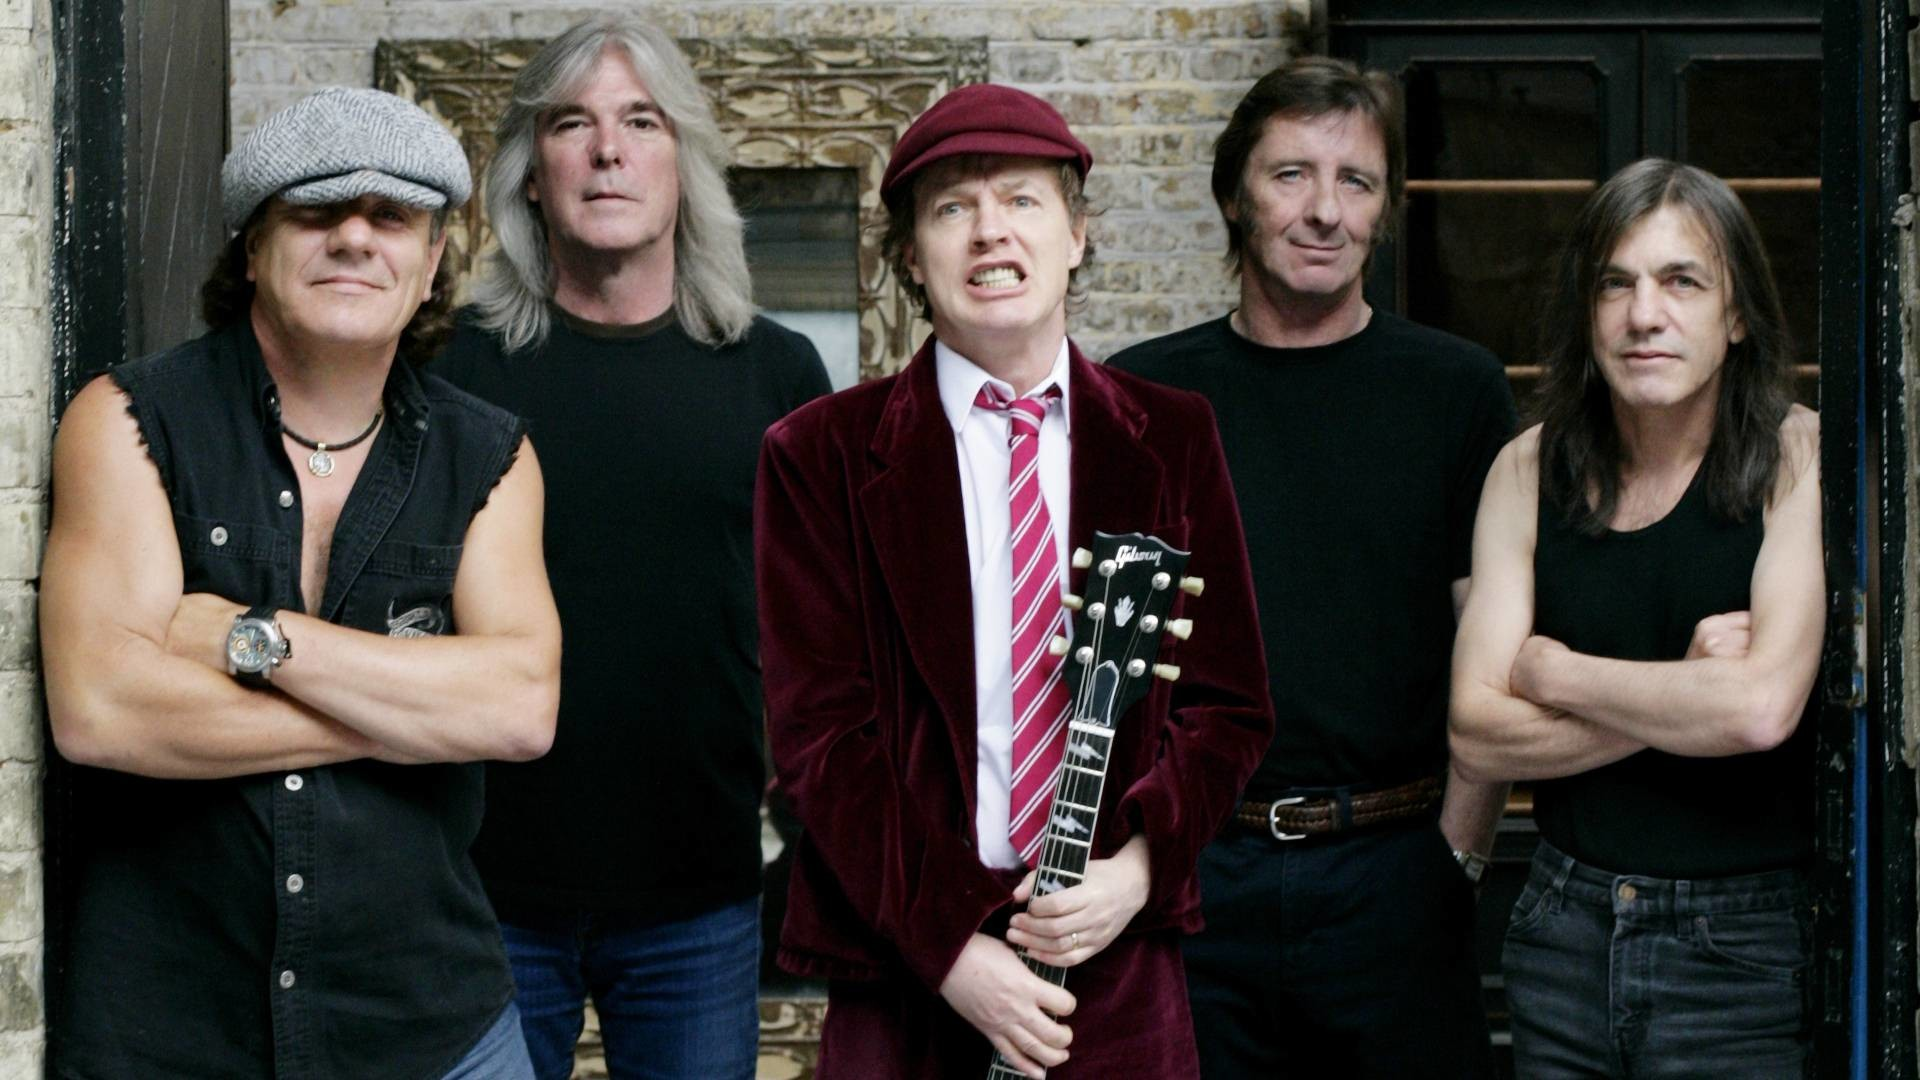 1920x1080 ACDC Wallpaper, ac dc acdc heavy metal hard rock classic bands .